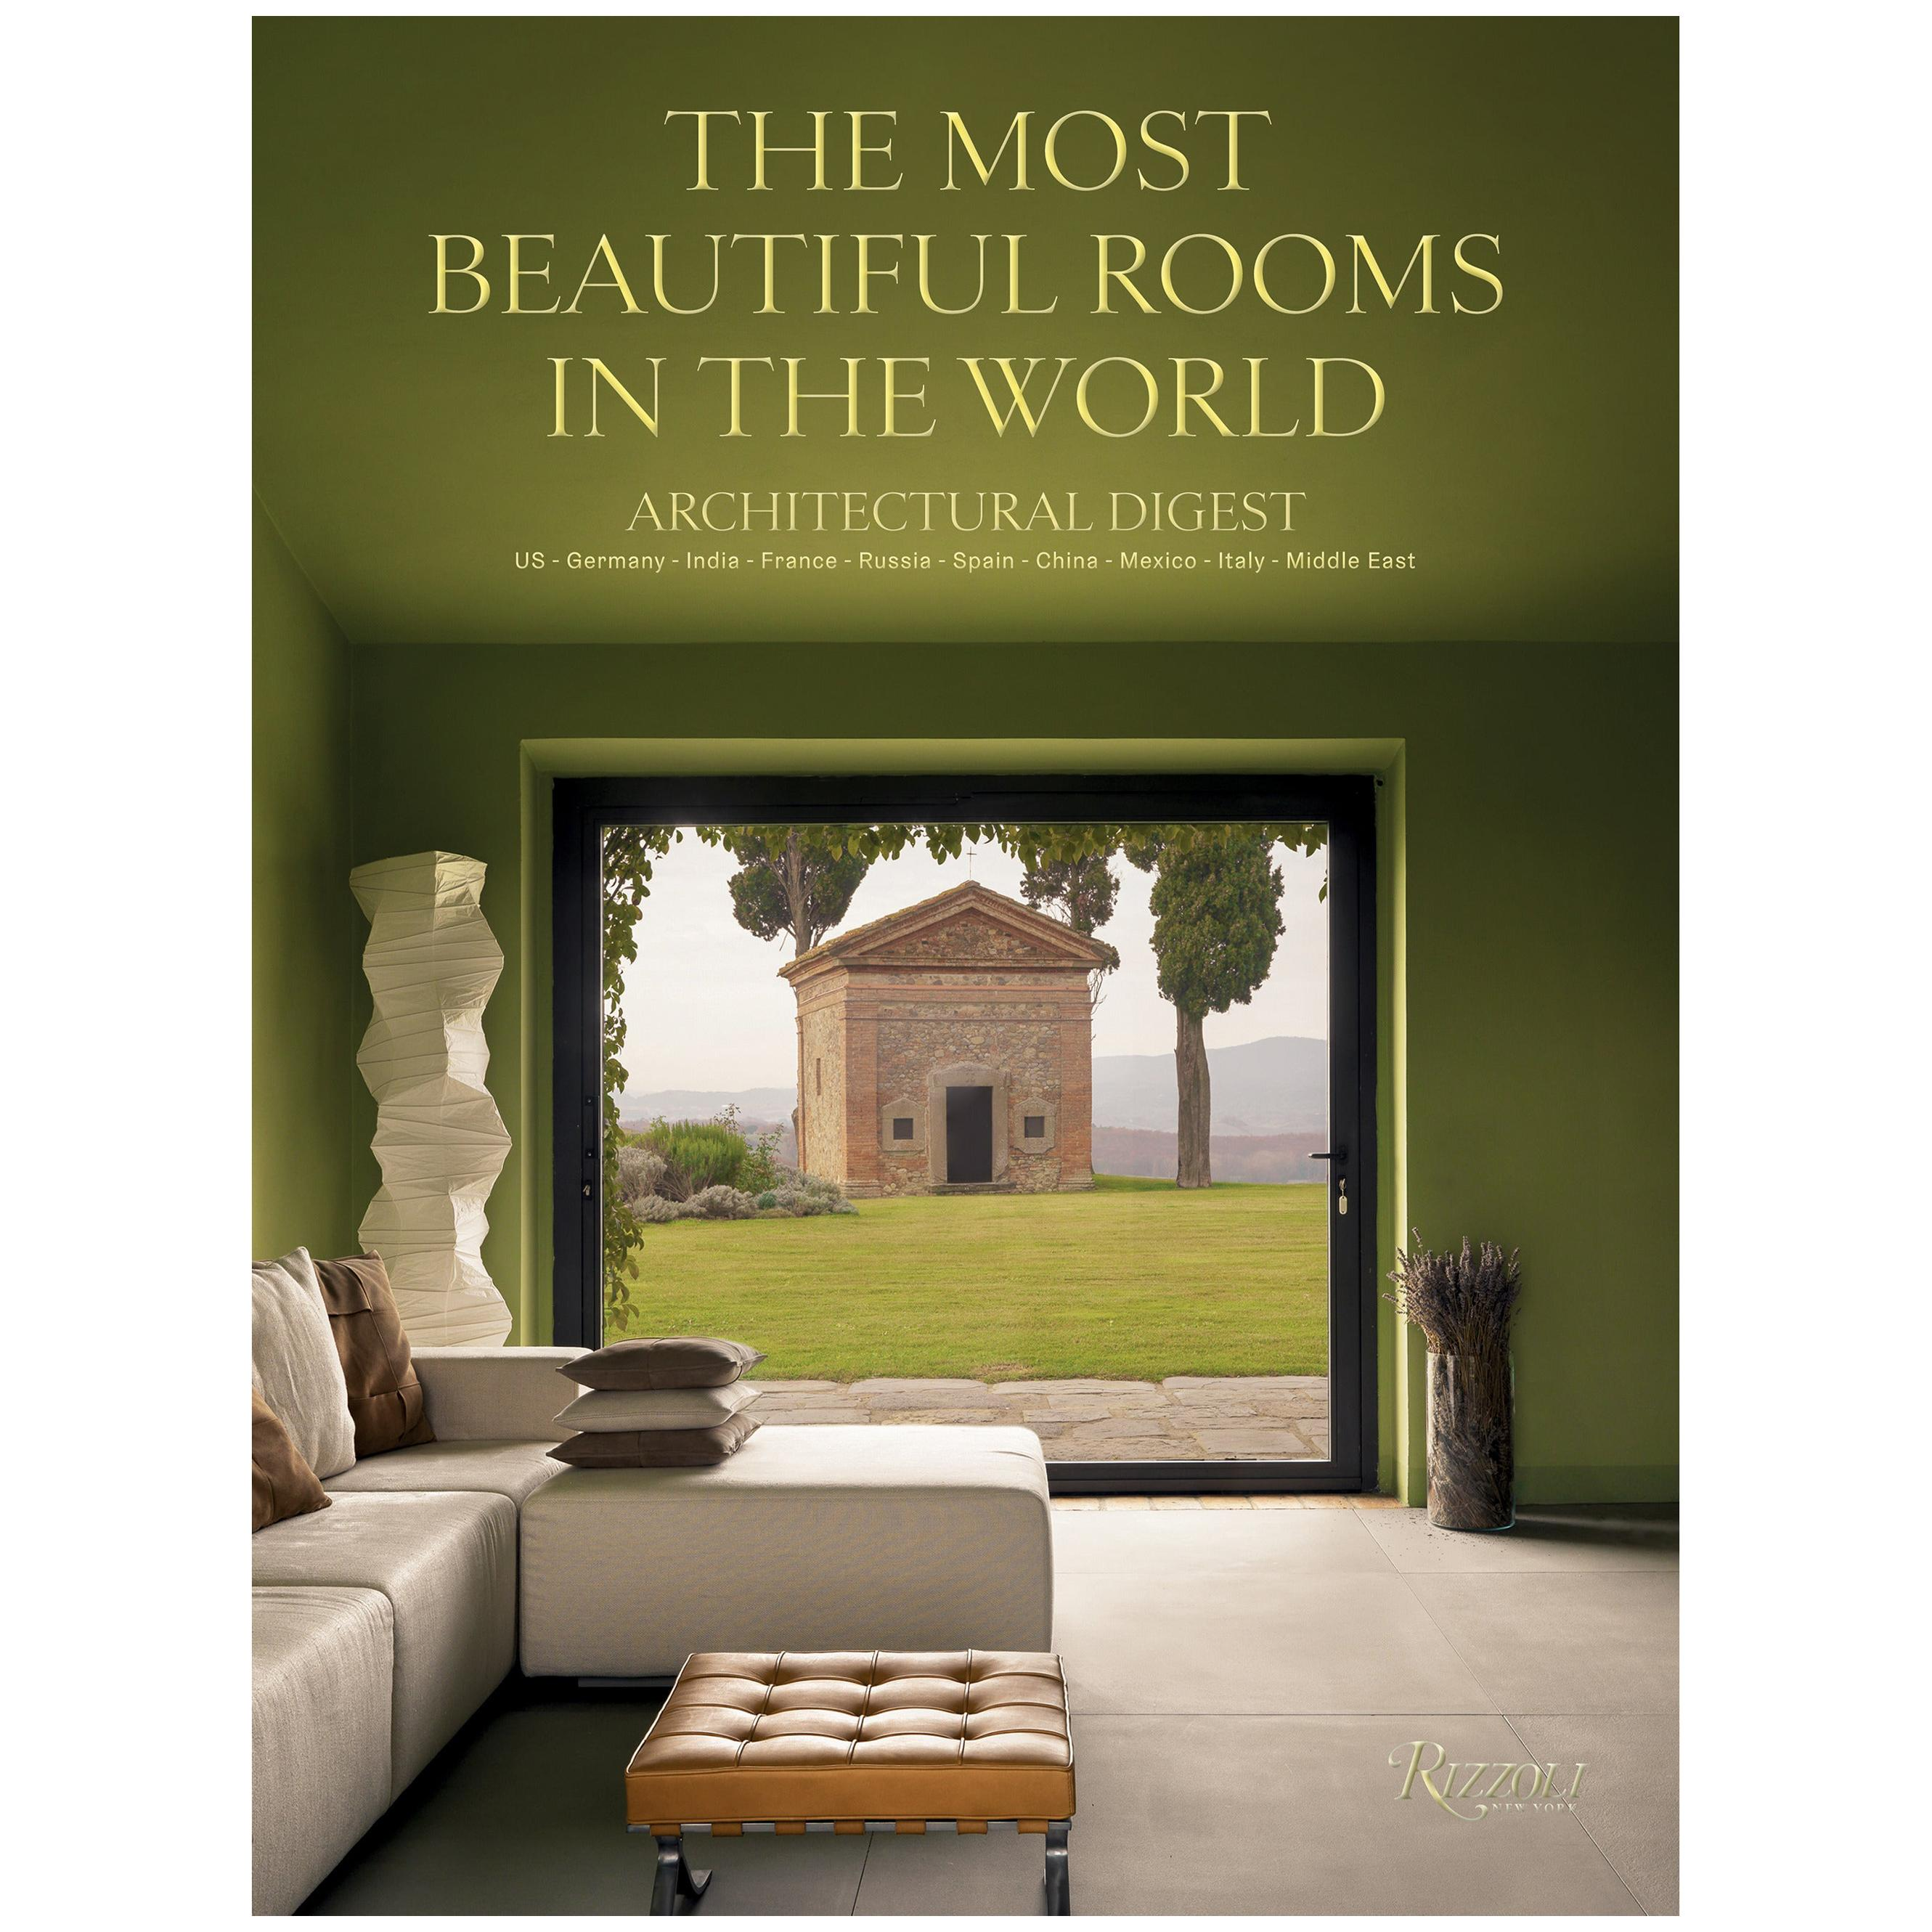 Architectural Digest The Most Beautiful Rooms in the World